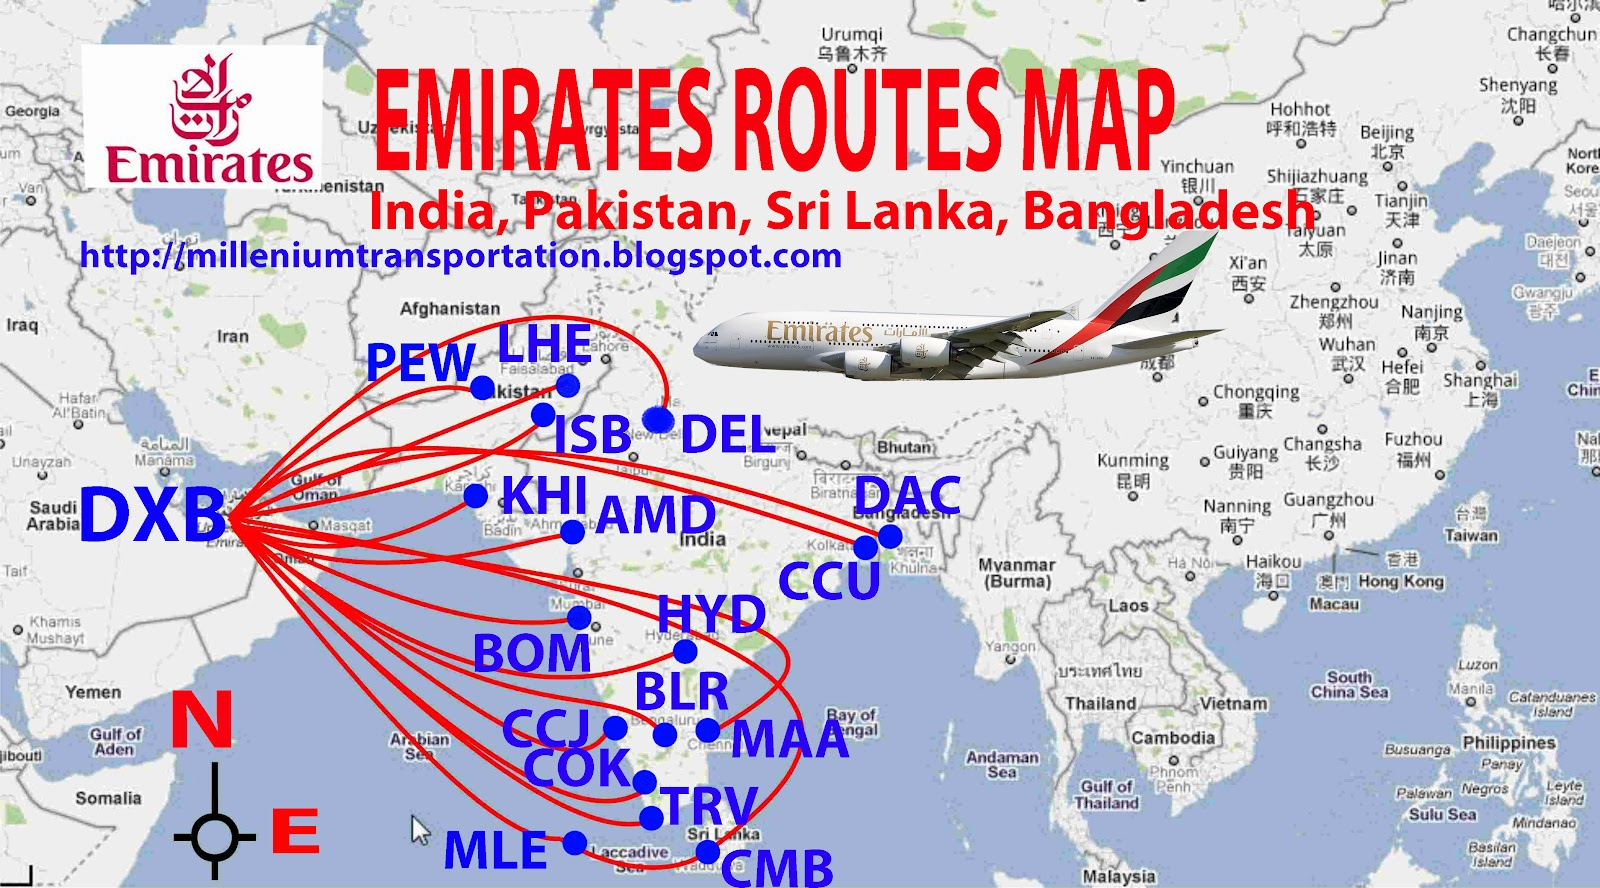 Dublin Flight Map on united route map 2015, air transat route map 2015, kenya airways route map 2015, emirates routes map europe, emirates airlines map, lufthansa route map 2015,